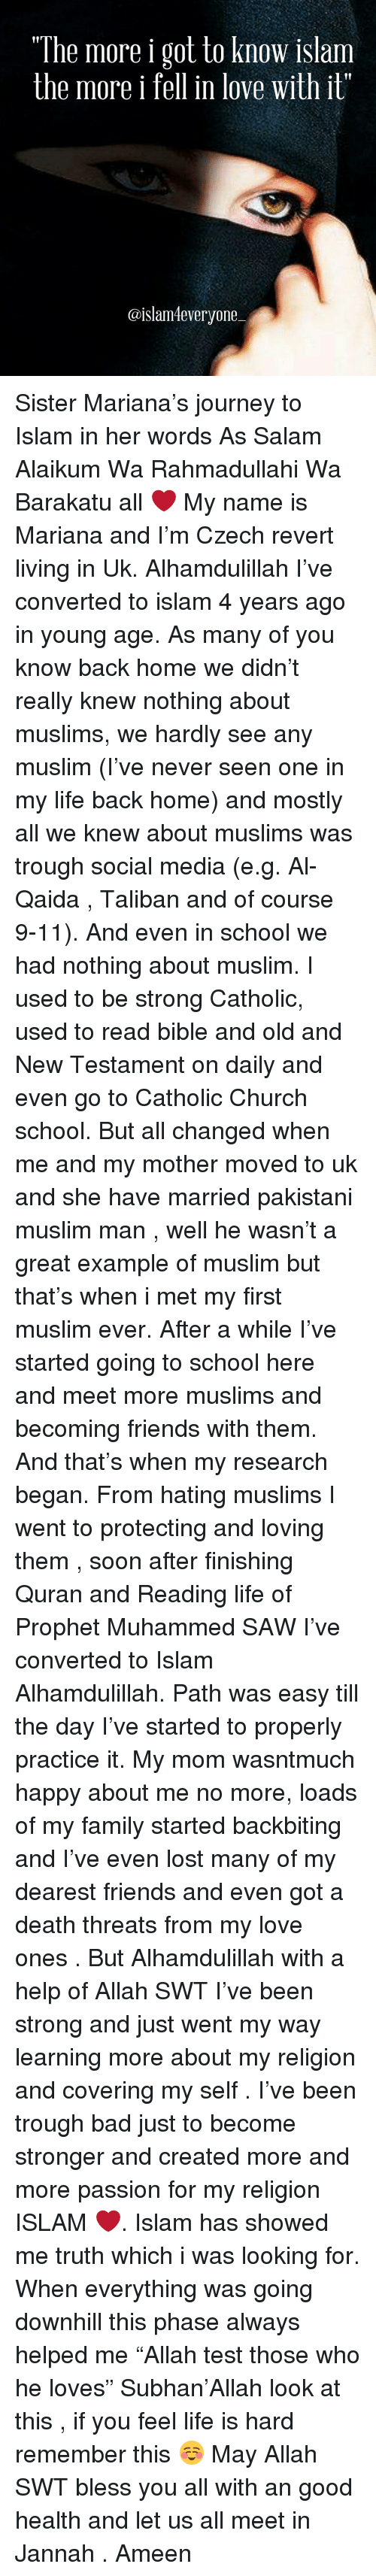 """Salamence: """"The more i got to know islam  the more i  fell in love with it""""  @islam 4everyone Sister Mariana's journey to Islam in her words As Salam Alaikum Wa Rahmadullahi Wa Barakatu all ❤️ My name is Mariana and I'm Czech revert living in Uk. Alhamdulillah I've converted to islam 4 years ago in young age. As many of you know back home we didn't really knew nothing about muslims, we hardly see any muslim (I've never seen one in my life back home) and mostly all we knew about muslims was trough social media (e.g. Al-Qaida , Taliban and of course 9-11). And even in school we had nothing about muslim. I used to be strong Catholic, used to read bible and old and New Testament on daily and even go to Catholic Church school. But all changed when me and my mother moved to uk and she have married pakistani muslim man , well he wasn't a great example of muslim but that's when i met my first muslim ever. After a while I've started going to school here and meet more muslims and becoming friends with them. And that's when my research began. From hating muslims I went to protecting and loving them , soon after finishing Quran and Reading life of Prophet Muhammed SAW I've converted to Islam Alhamdulillah. Path was easy till the day I've started to properly practice it. My mom wasntmuch happy about me no more, loads of my family started backbiting and I've even lost many of my dearest friends and even got a death threats from my love ones . But Alhamdulillah with a help of Allah SWT I've been strong and just went my way learning more about my religion and covering my self . I've been trough bad just to become stronger and created more and more passion for my religion ISLAM ❤️. Islam has showed me truth which i was looking for. When everything was going downhill this phase always helped me """"Allah test those who he loves"""" Subhan'Allah look at this , if you feel life is hard remember this ☺️ May Allah SWT bless you all with an good health and let us all meet in Jannah . Ameen"""